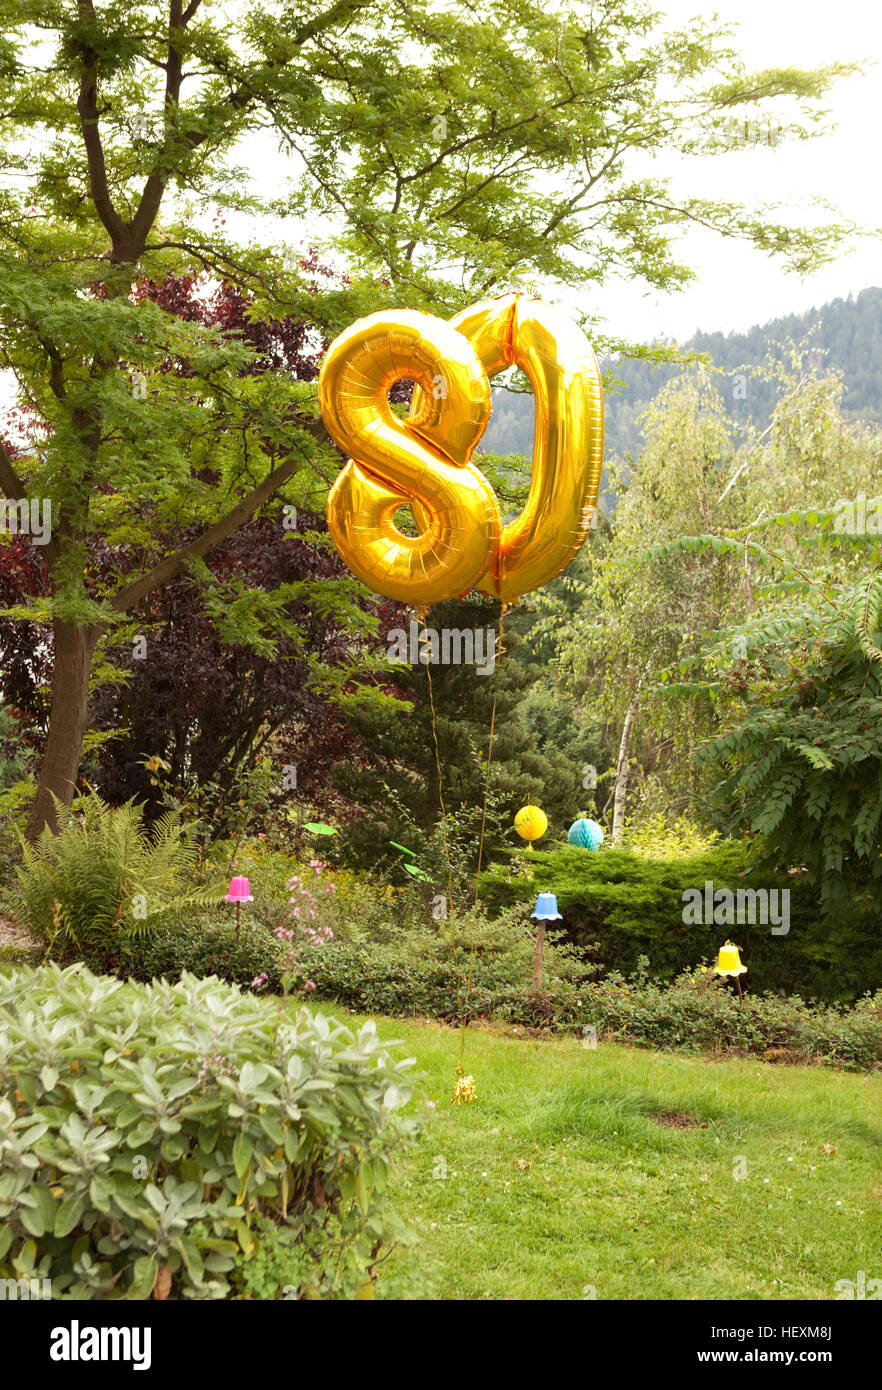 Dekoration for 80th birthday in garden with golden balloons - Stock Image